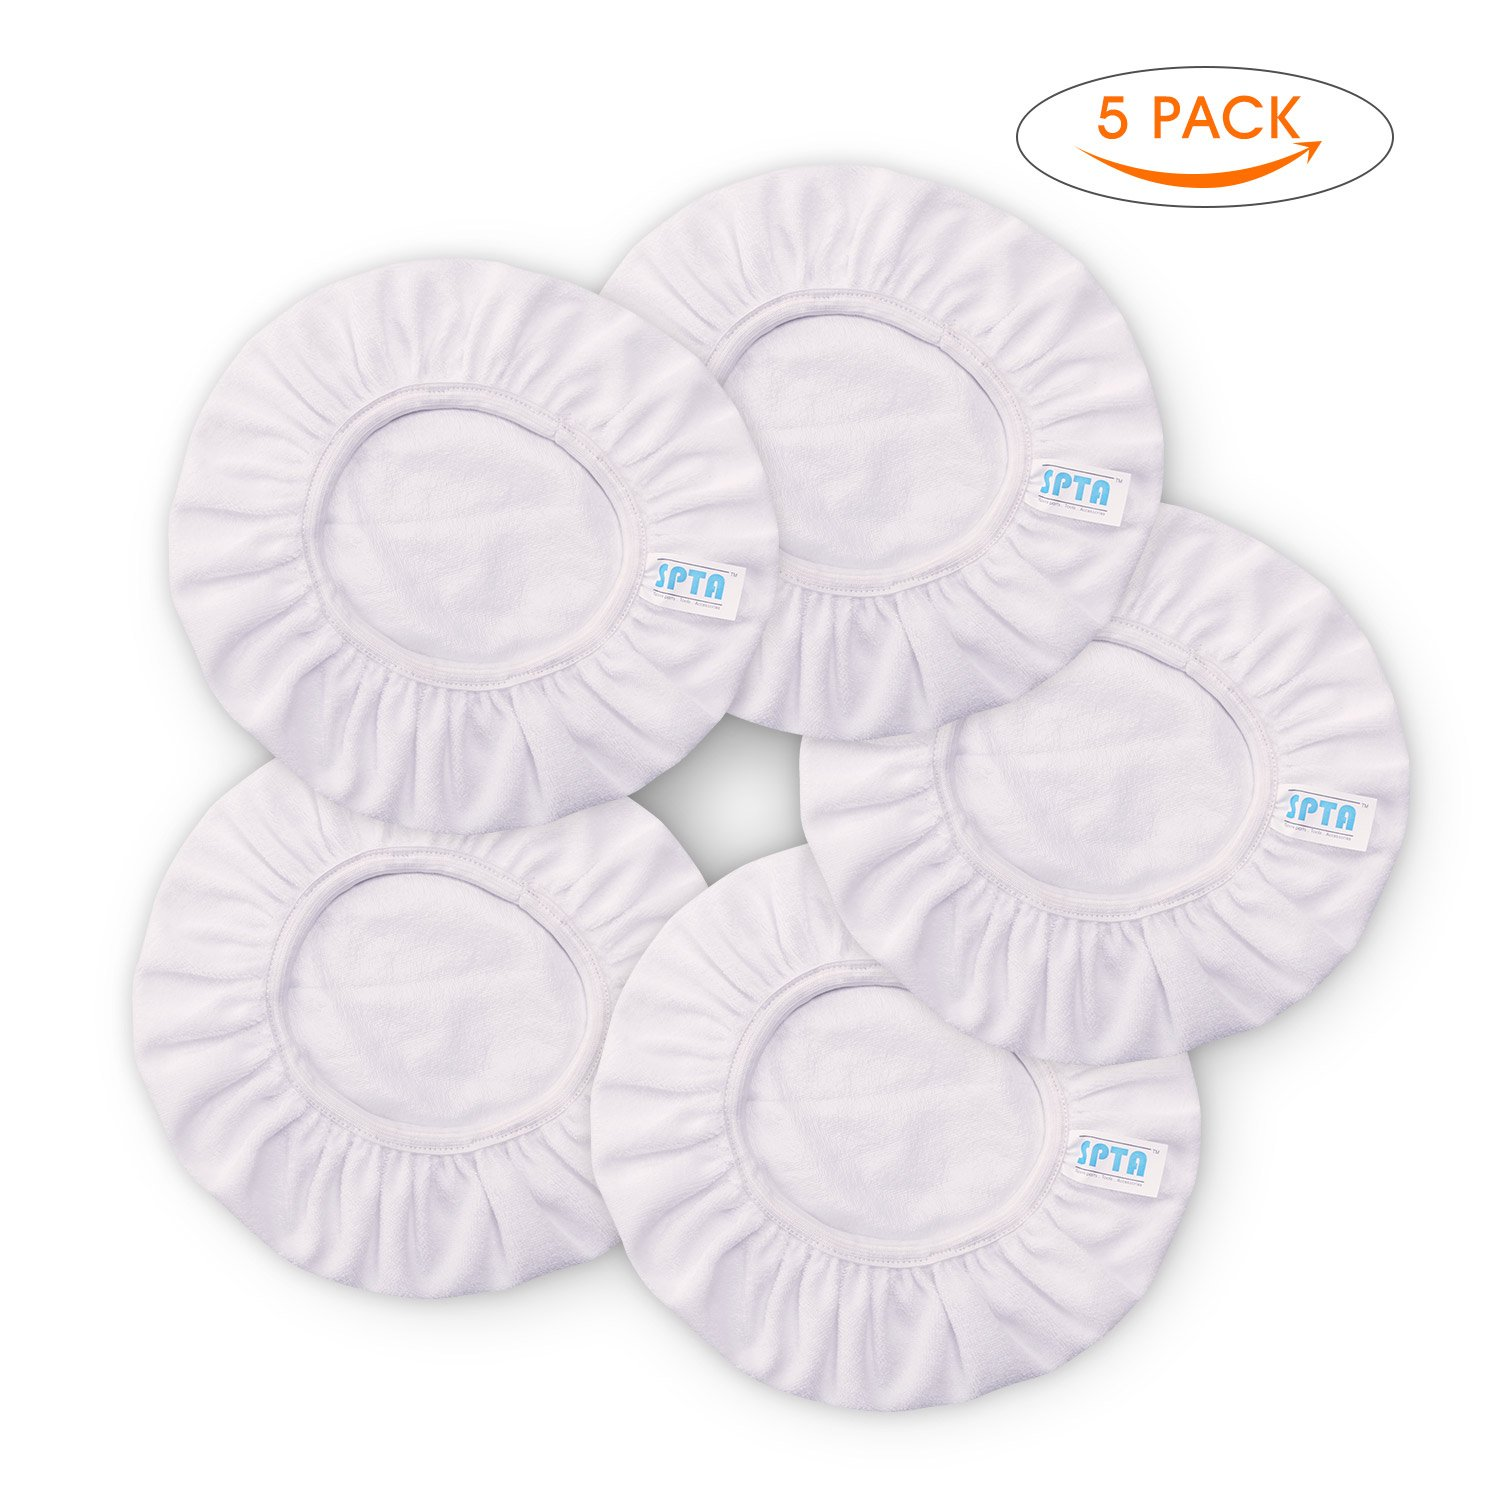 SPTA White Car Polisher Pad Bonnet Terry Cloth Pads Waxer/polishing Cover For 9'' And 10'' Car Polisher Pack of 5Pcs